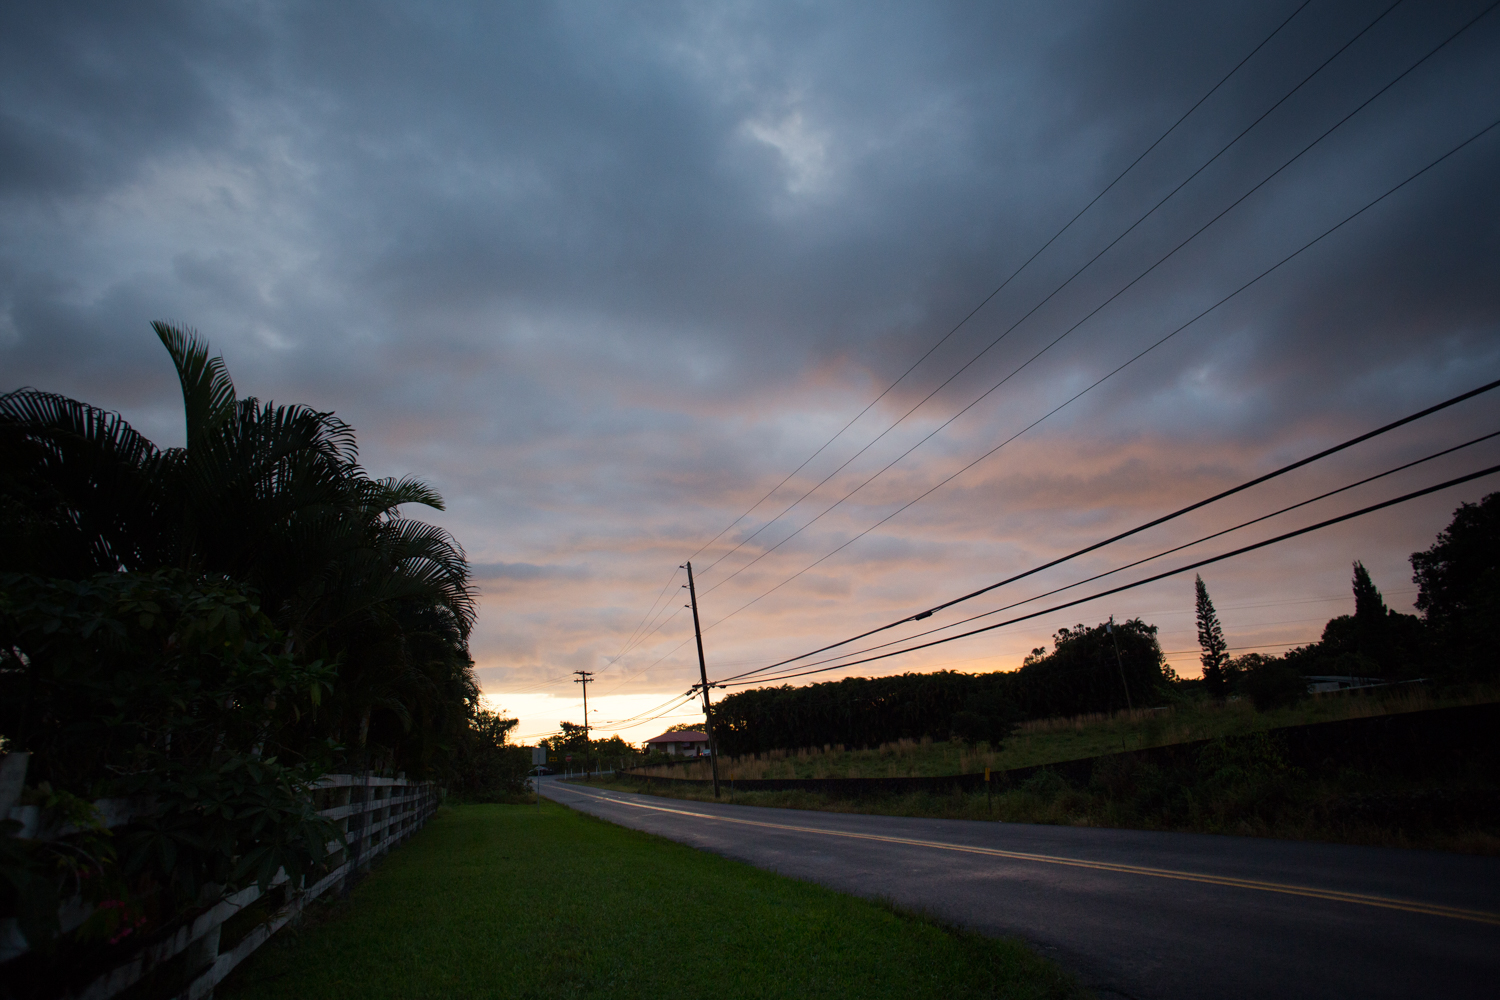 sunset in hilo